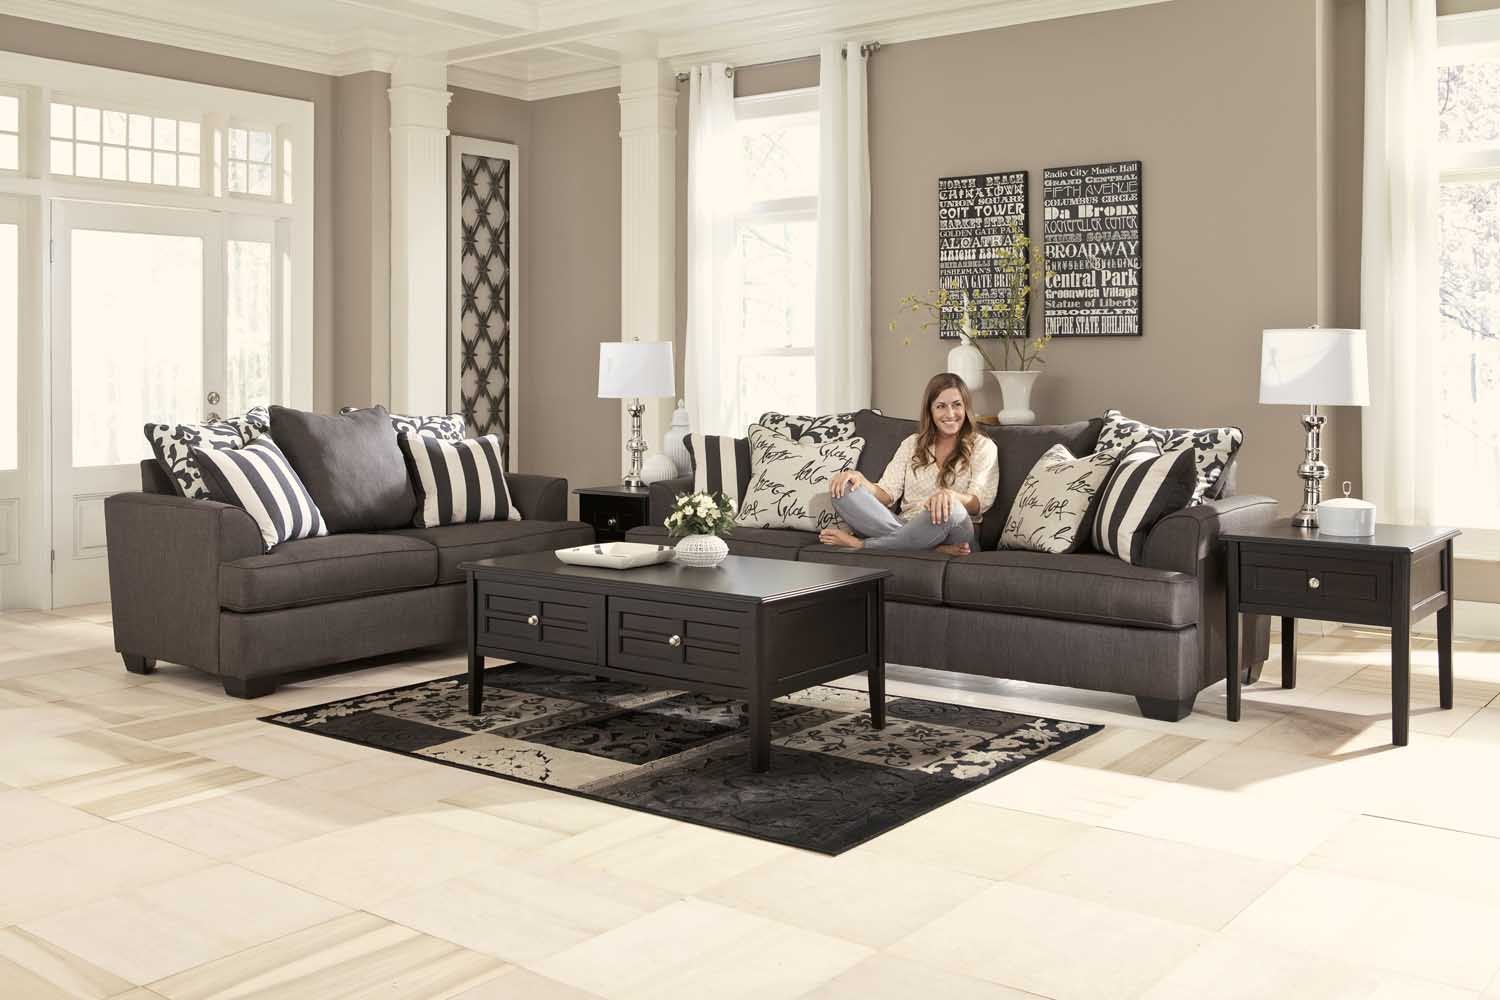 Living Room Sets For In Houston Tx 73403 In By Ashley Furniture In Houston Tx Ashley 73403 Levon